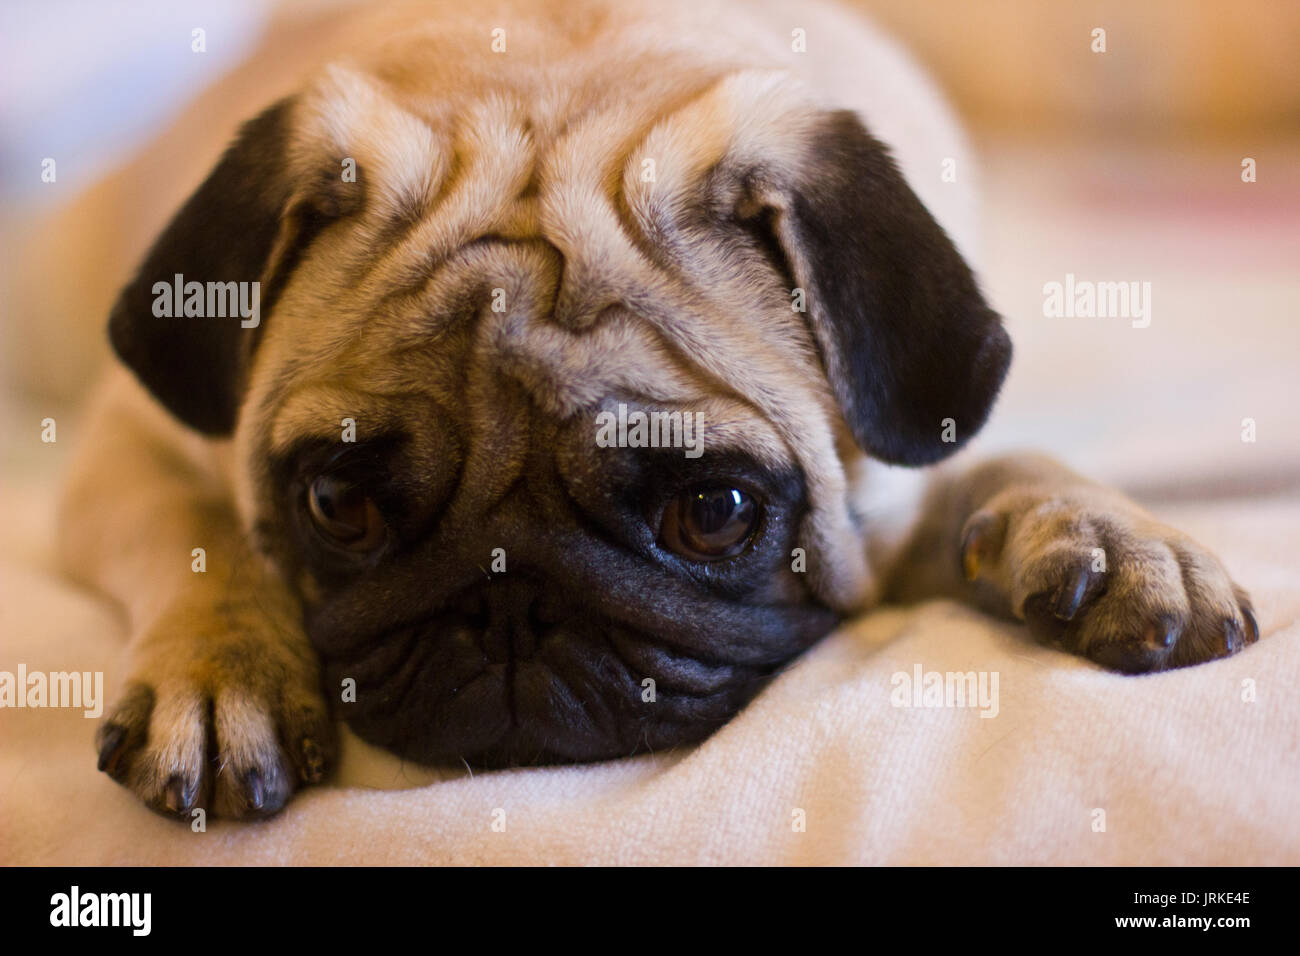 Upset puppy pug - Stock Image